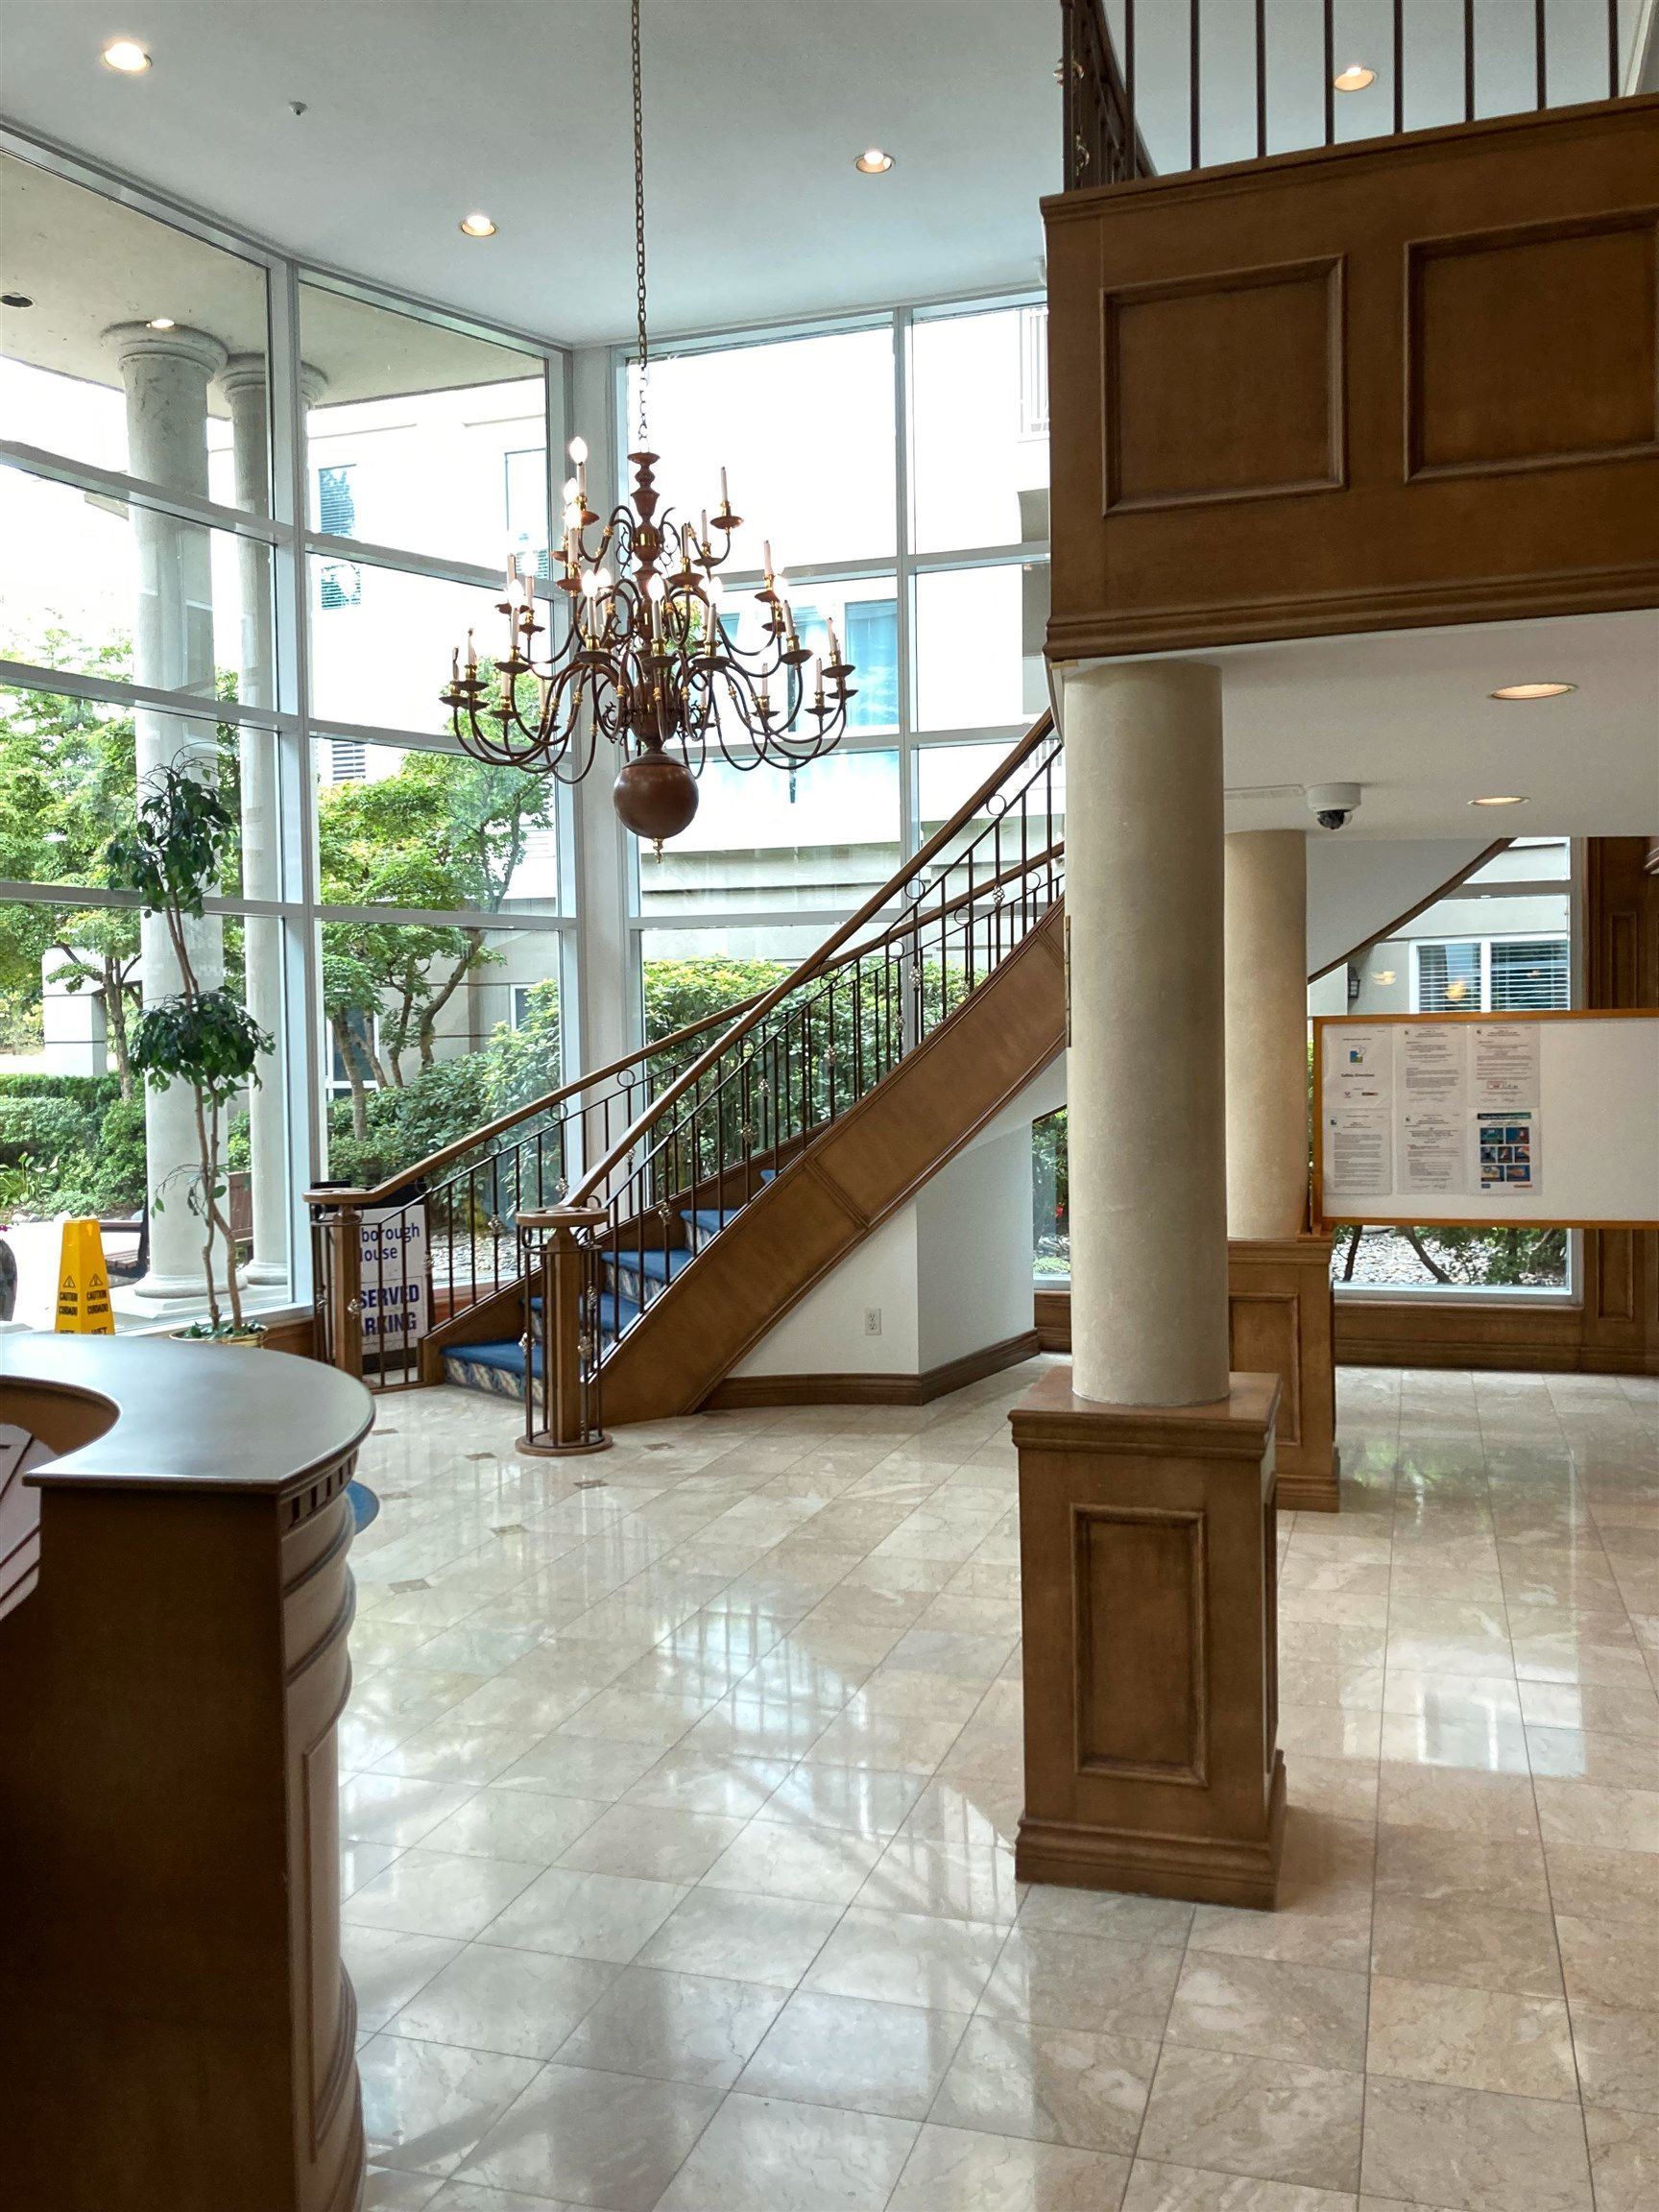 """Main Photo: 201 3098 GUILDFORD Way in Coquitlam: North Coquitlam Condo for sale in """"MARLBOBOUGH HOUSE"""" : MLS®# R2608992"""